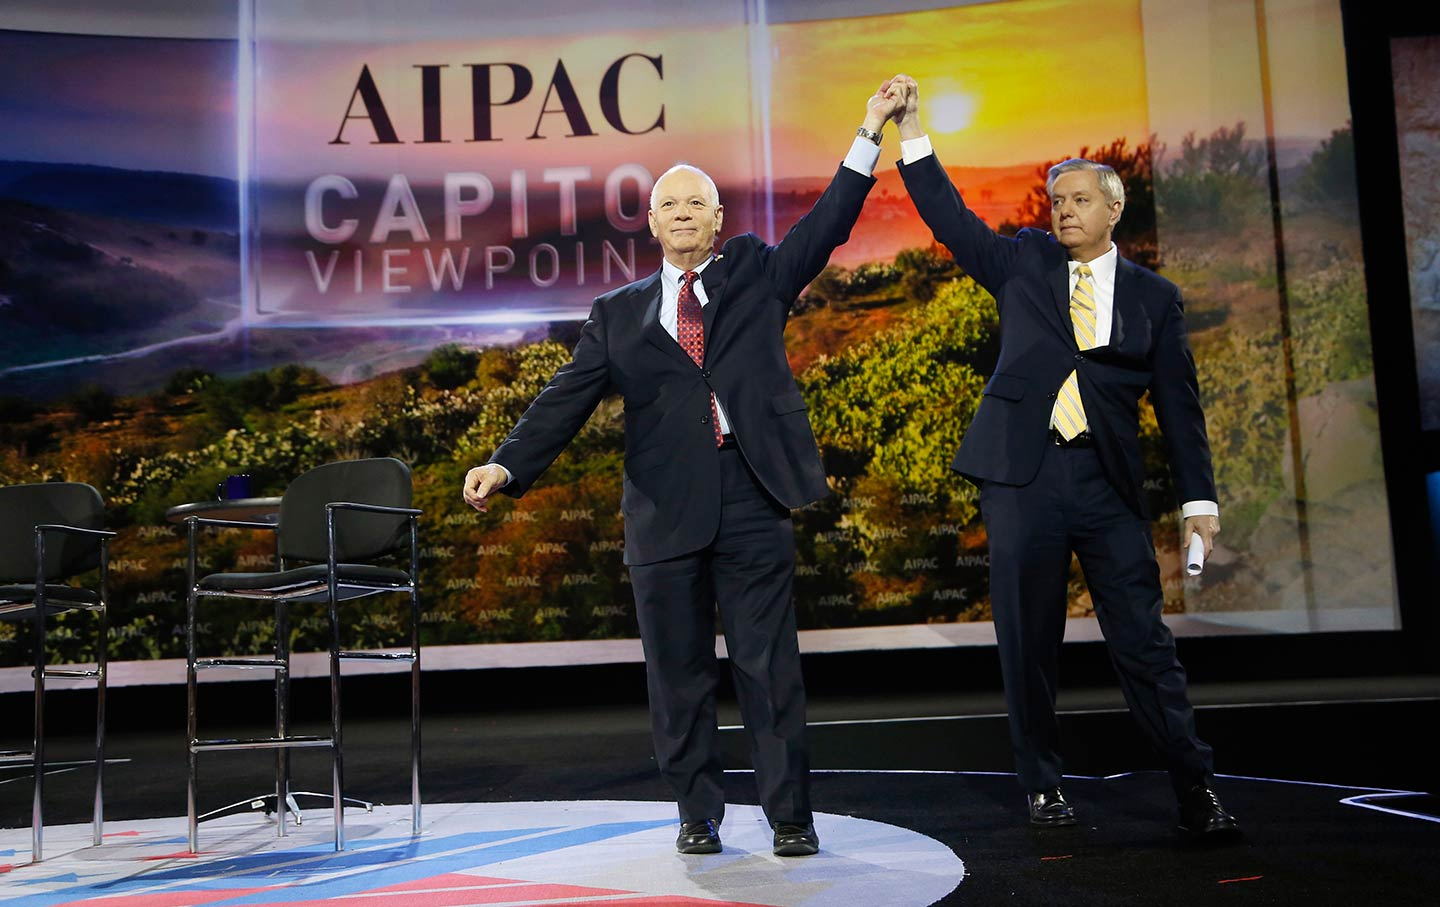 Senators at AIPAC